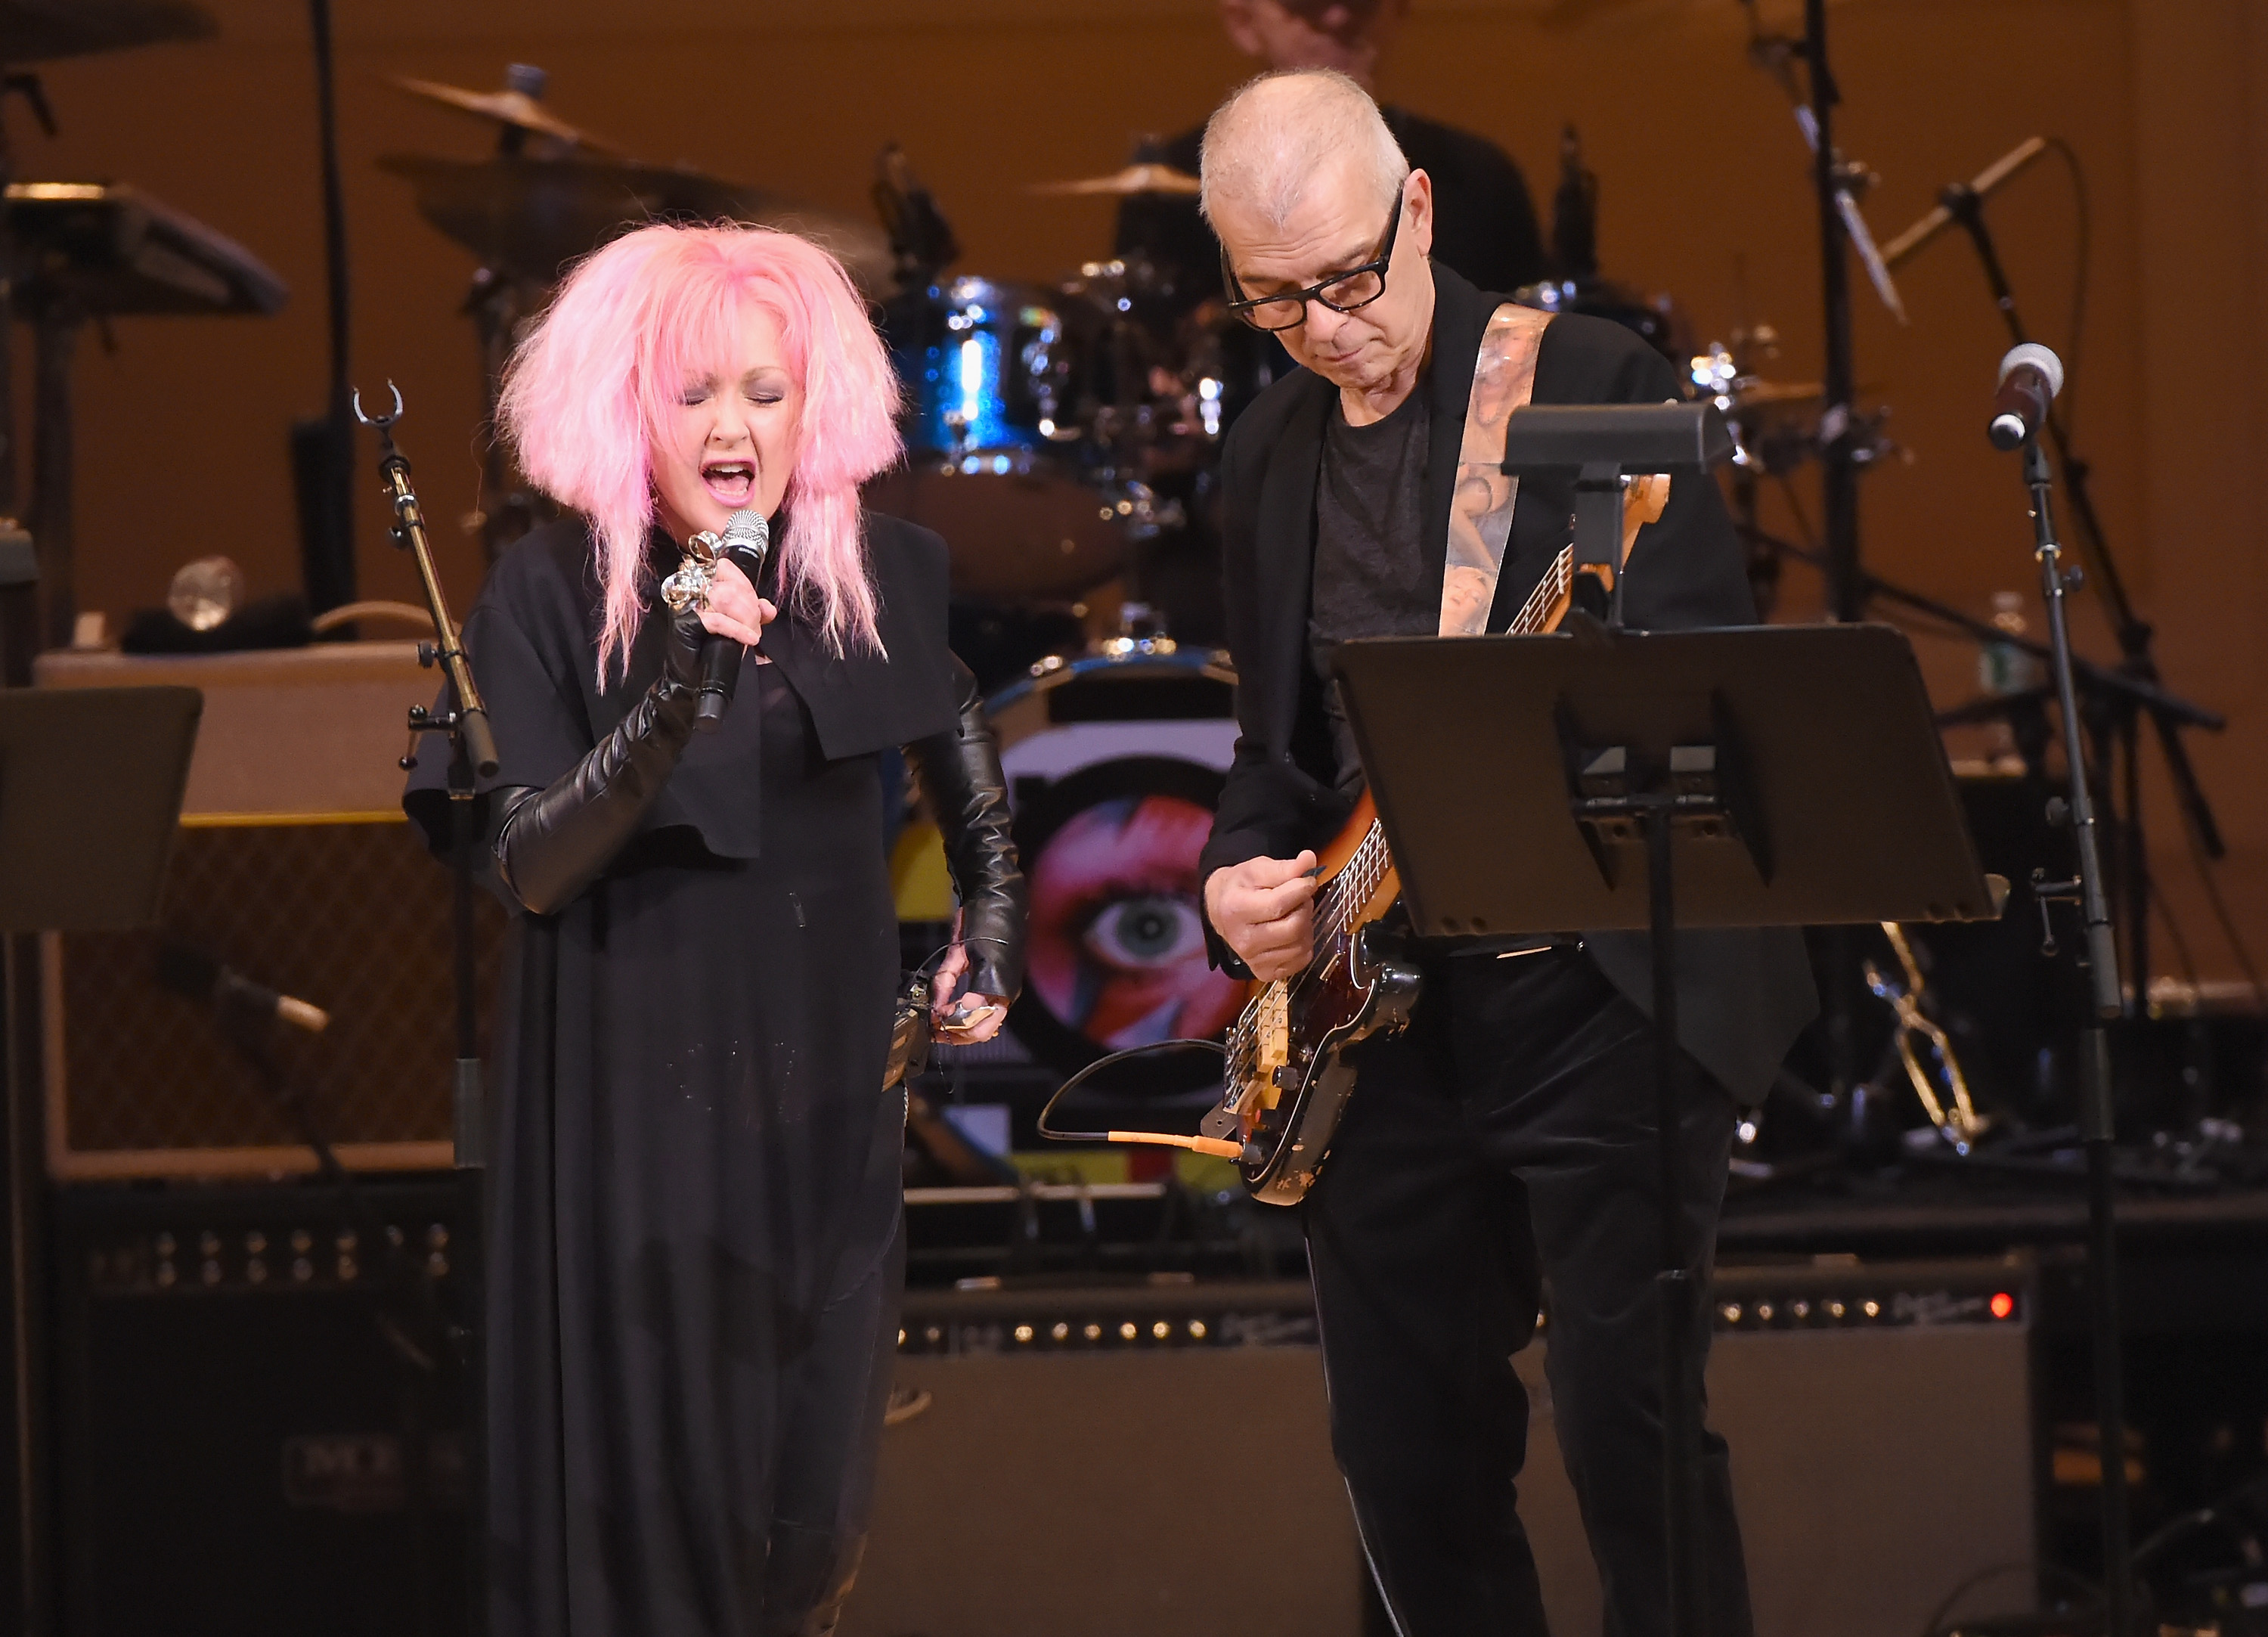 Debbie Harry, Cyndi Lauper and more pay tribute to David Bowie at special memorial concert